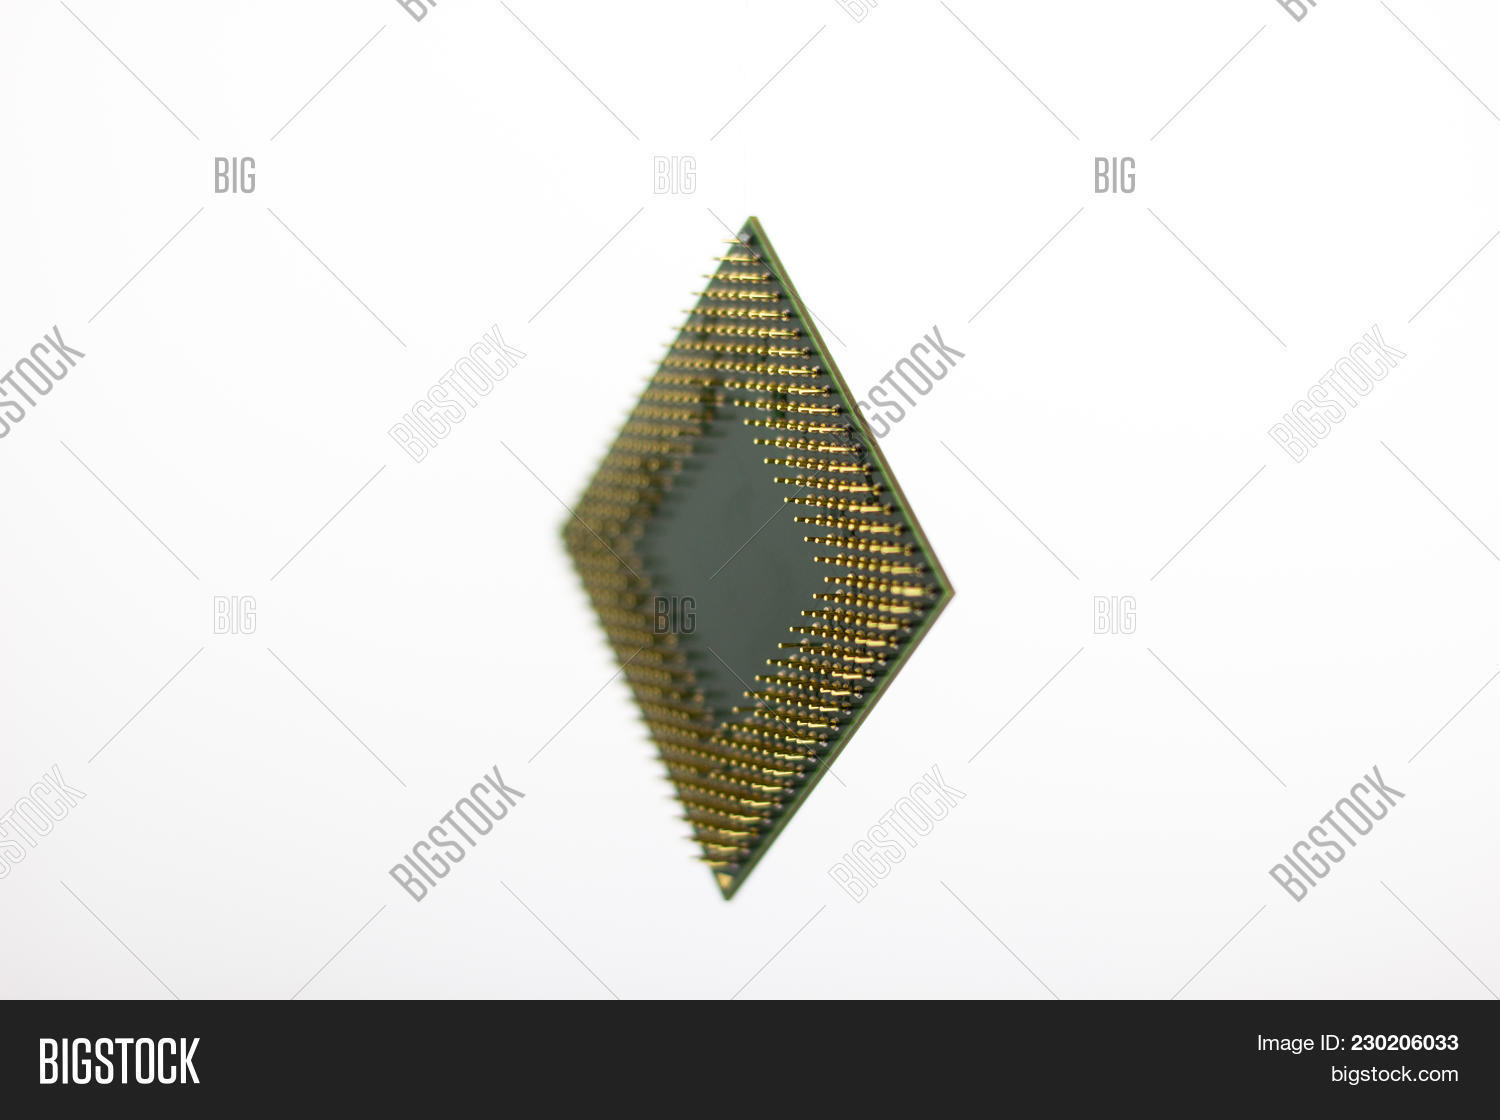 Central Processor Cpu Image Photo Free Trial Bigstock Most Popular Electronic Circuits Is A Heart Of That Centralized All Commands And